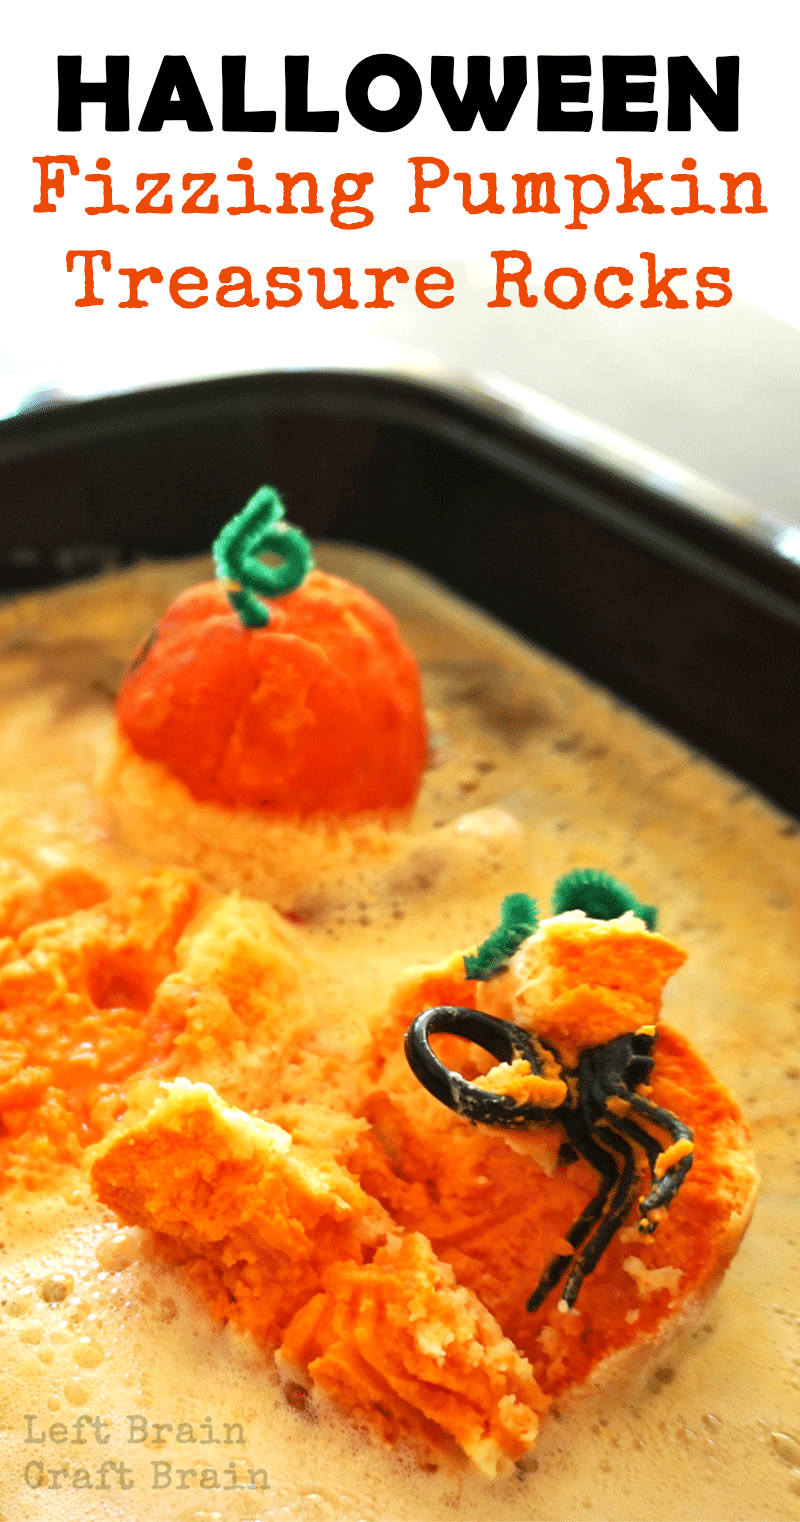 These fizzing pumpkin treasure rocks are great Halloween STEM / STEAM fun for kids. They're perfect party favors for your Halloween bash, too.